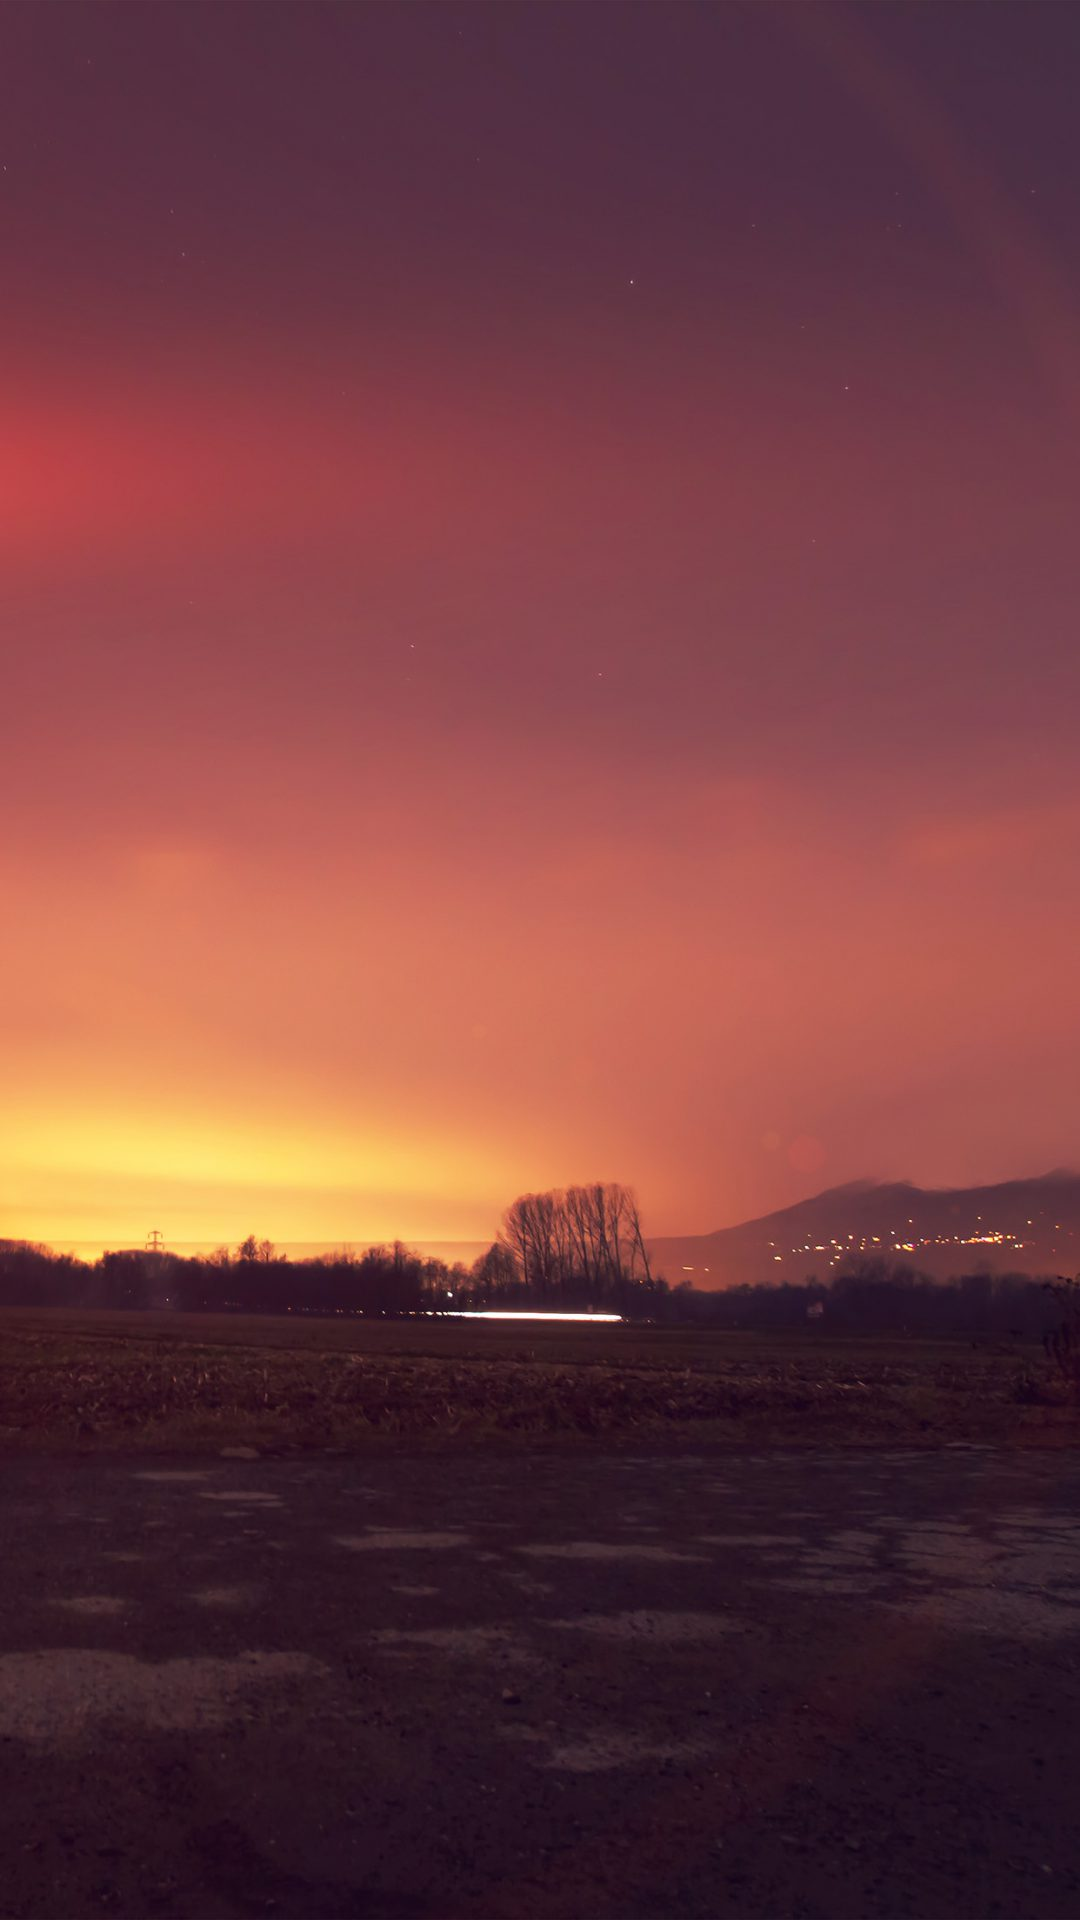 Dawn Nature Sky Sunset Mountain Red Dark Flre Flare